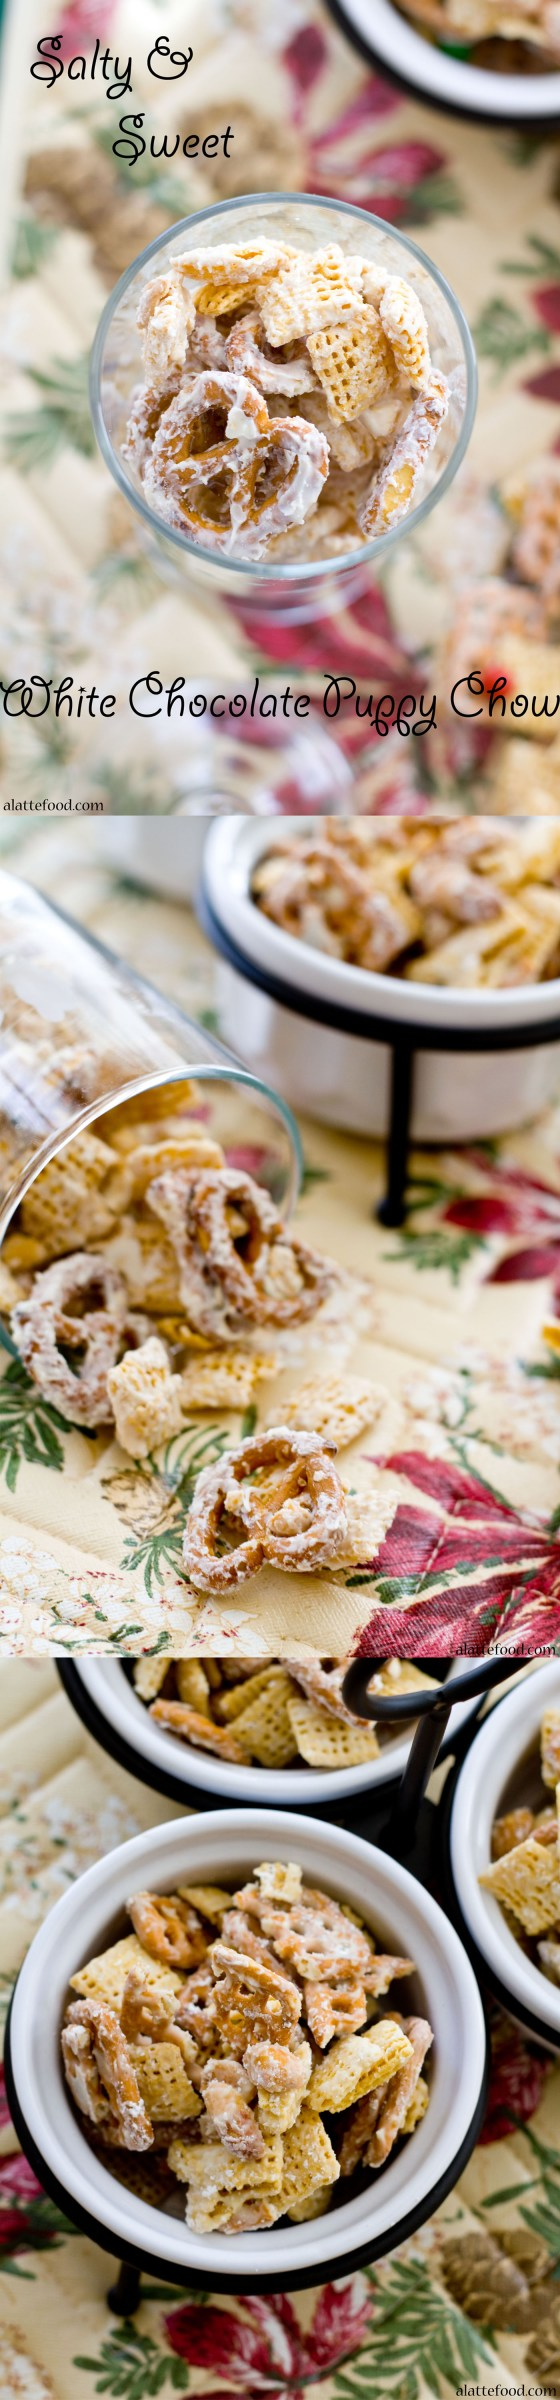 White Chocolate Salty and Sweet Puppy Chow | A Latte Food